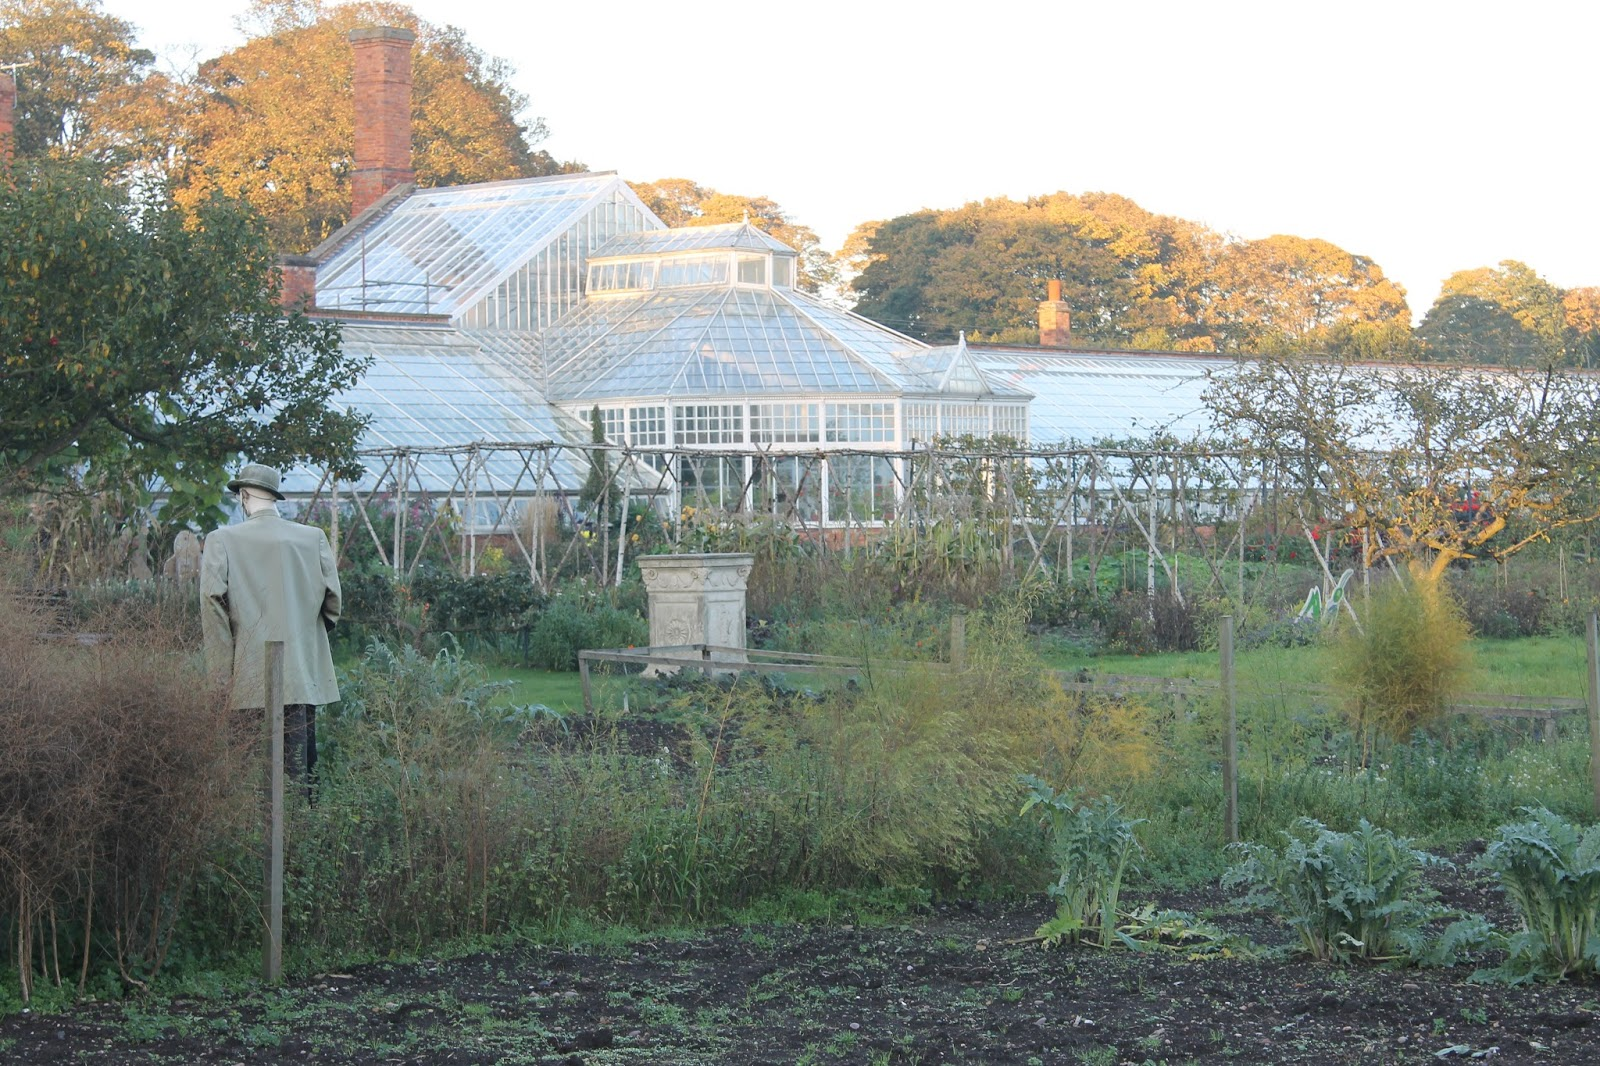 Walled Kitchen Garden Jibberjabberuk Clumber Park Walled Kitchen Garden In November